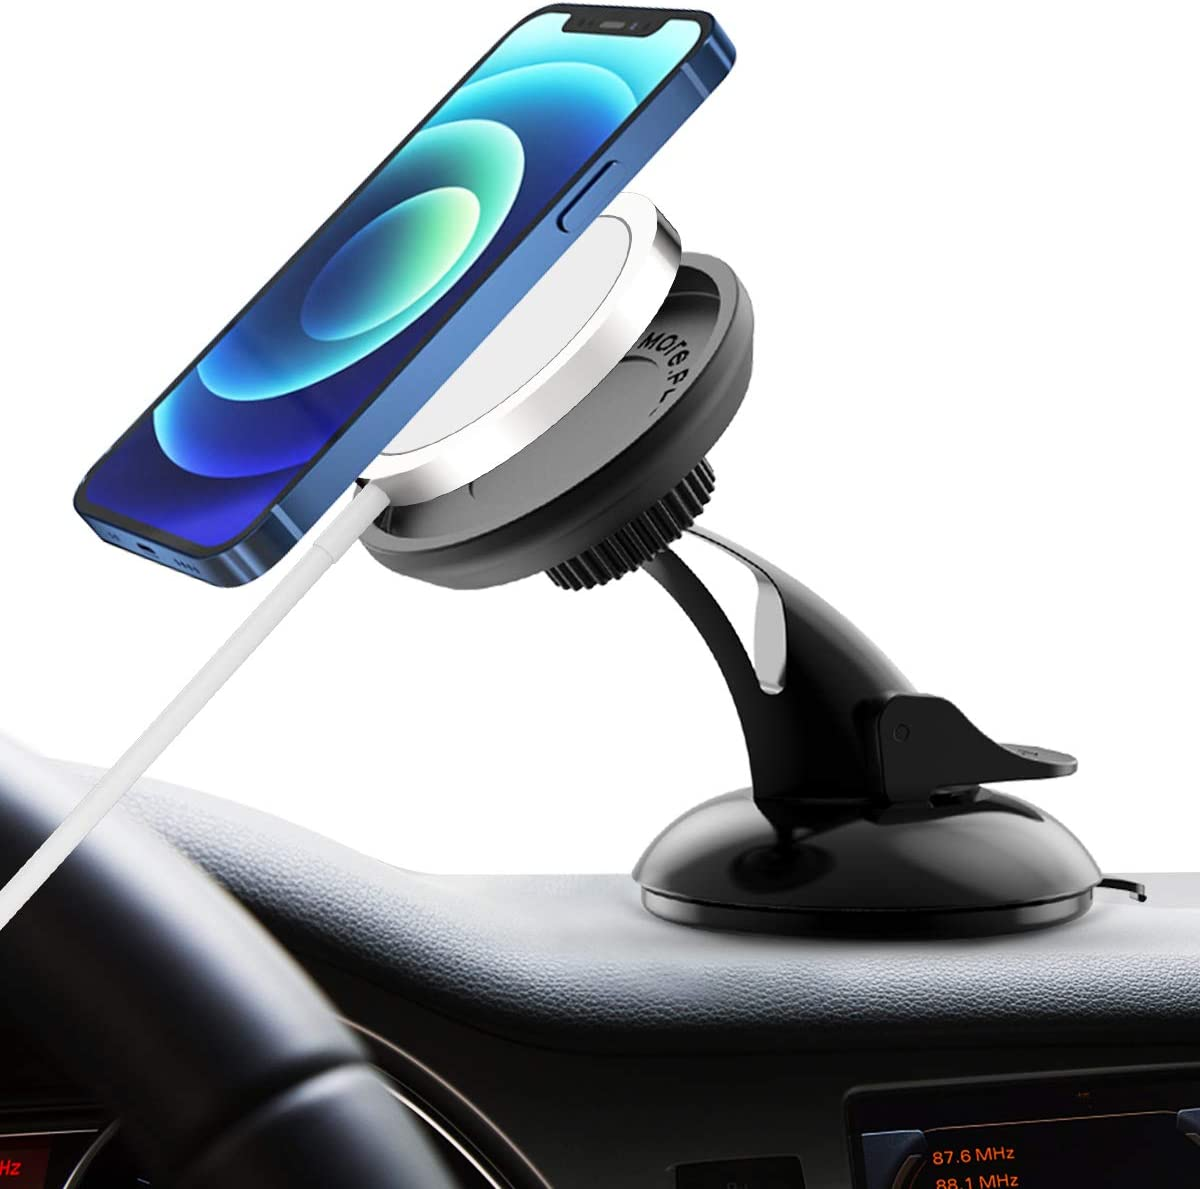 Suction Cup 12 Mini Suction Cup Car Phone Holder for MagSafe Charger iPhone 12 Pro Max 360 Degree Rotation Dashboard Car Phone Mount Compatible with iPhone 12 12 Pro